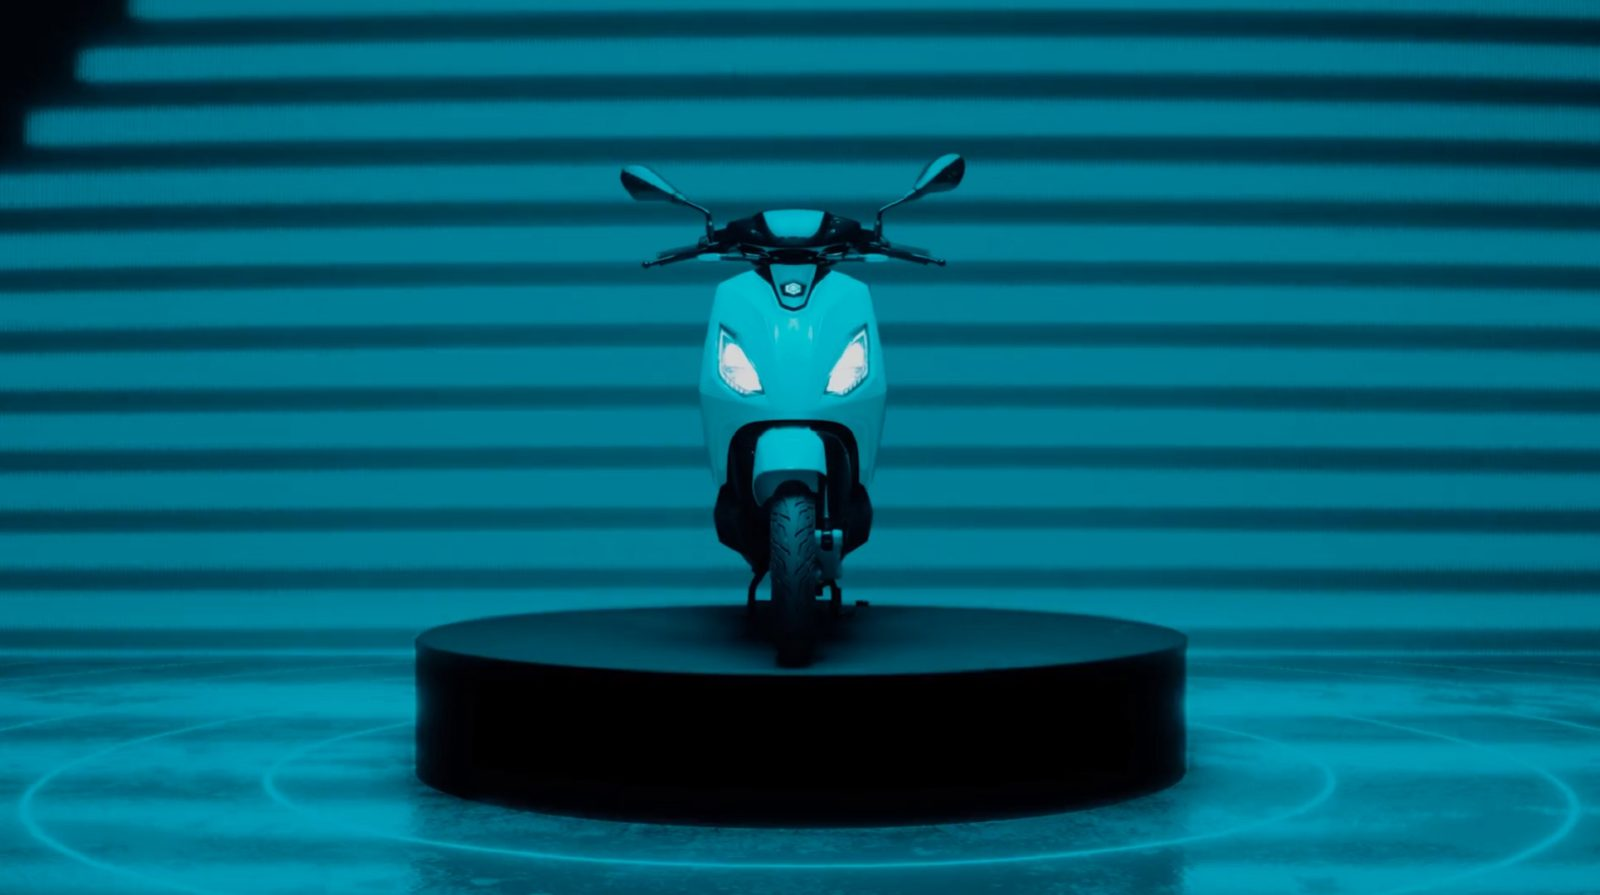 piaggio-1-e-scooter-finally-hits-the-market,-it-aims-to-please-the-youngsters